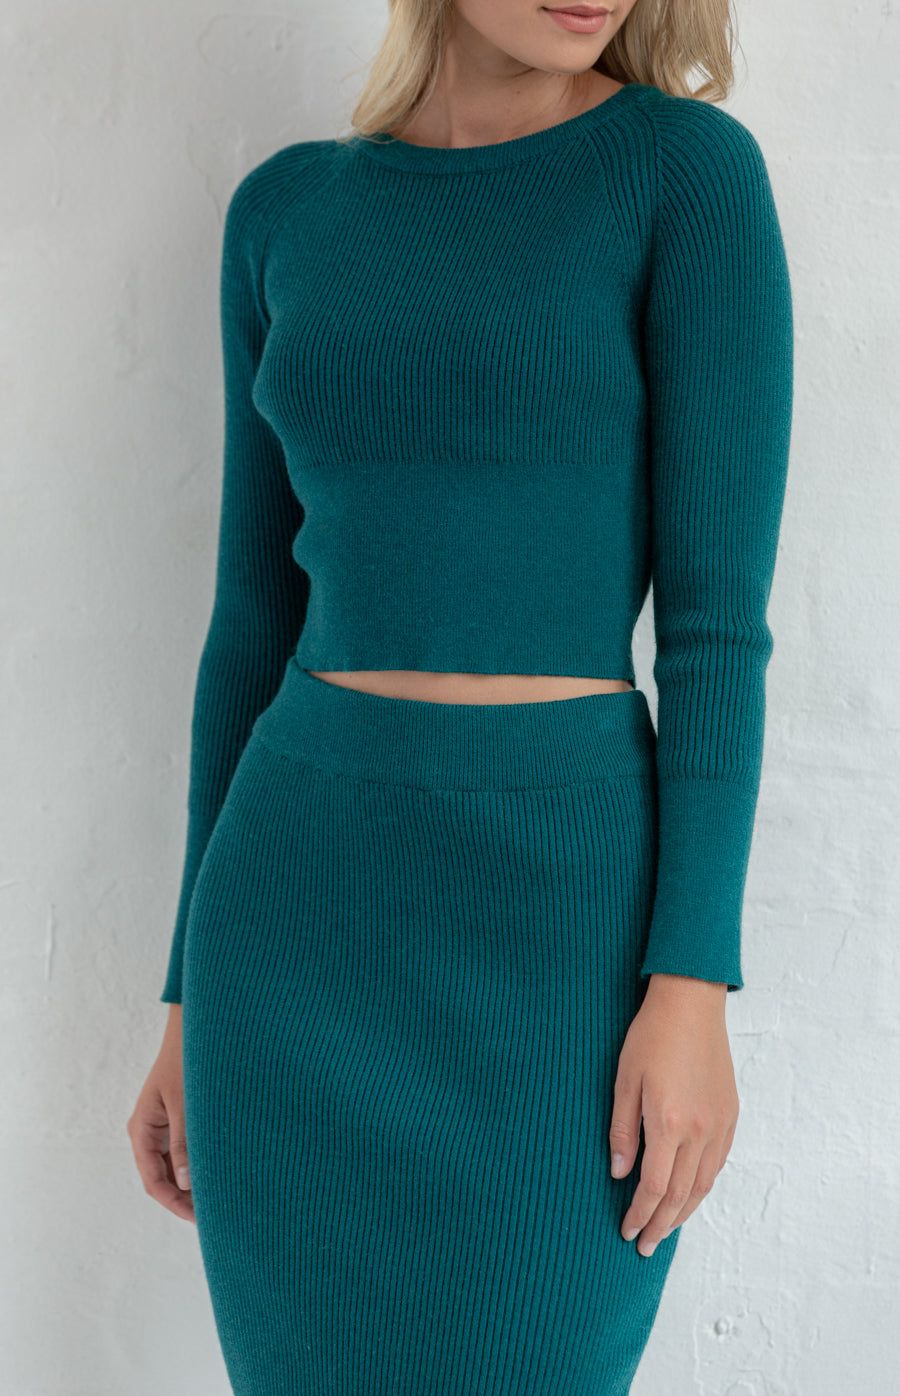 ANNE FITTED KNIT SET WITH CROP TOP & MIDI DRESS